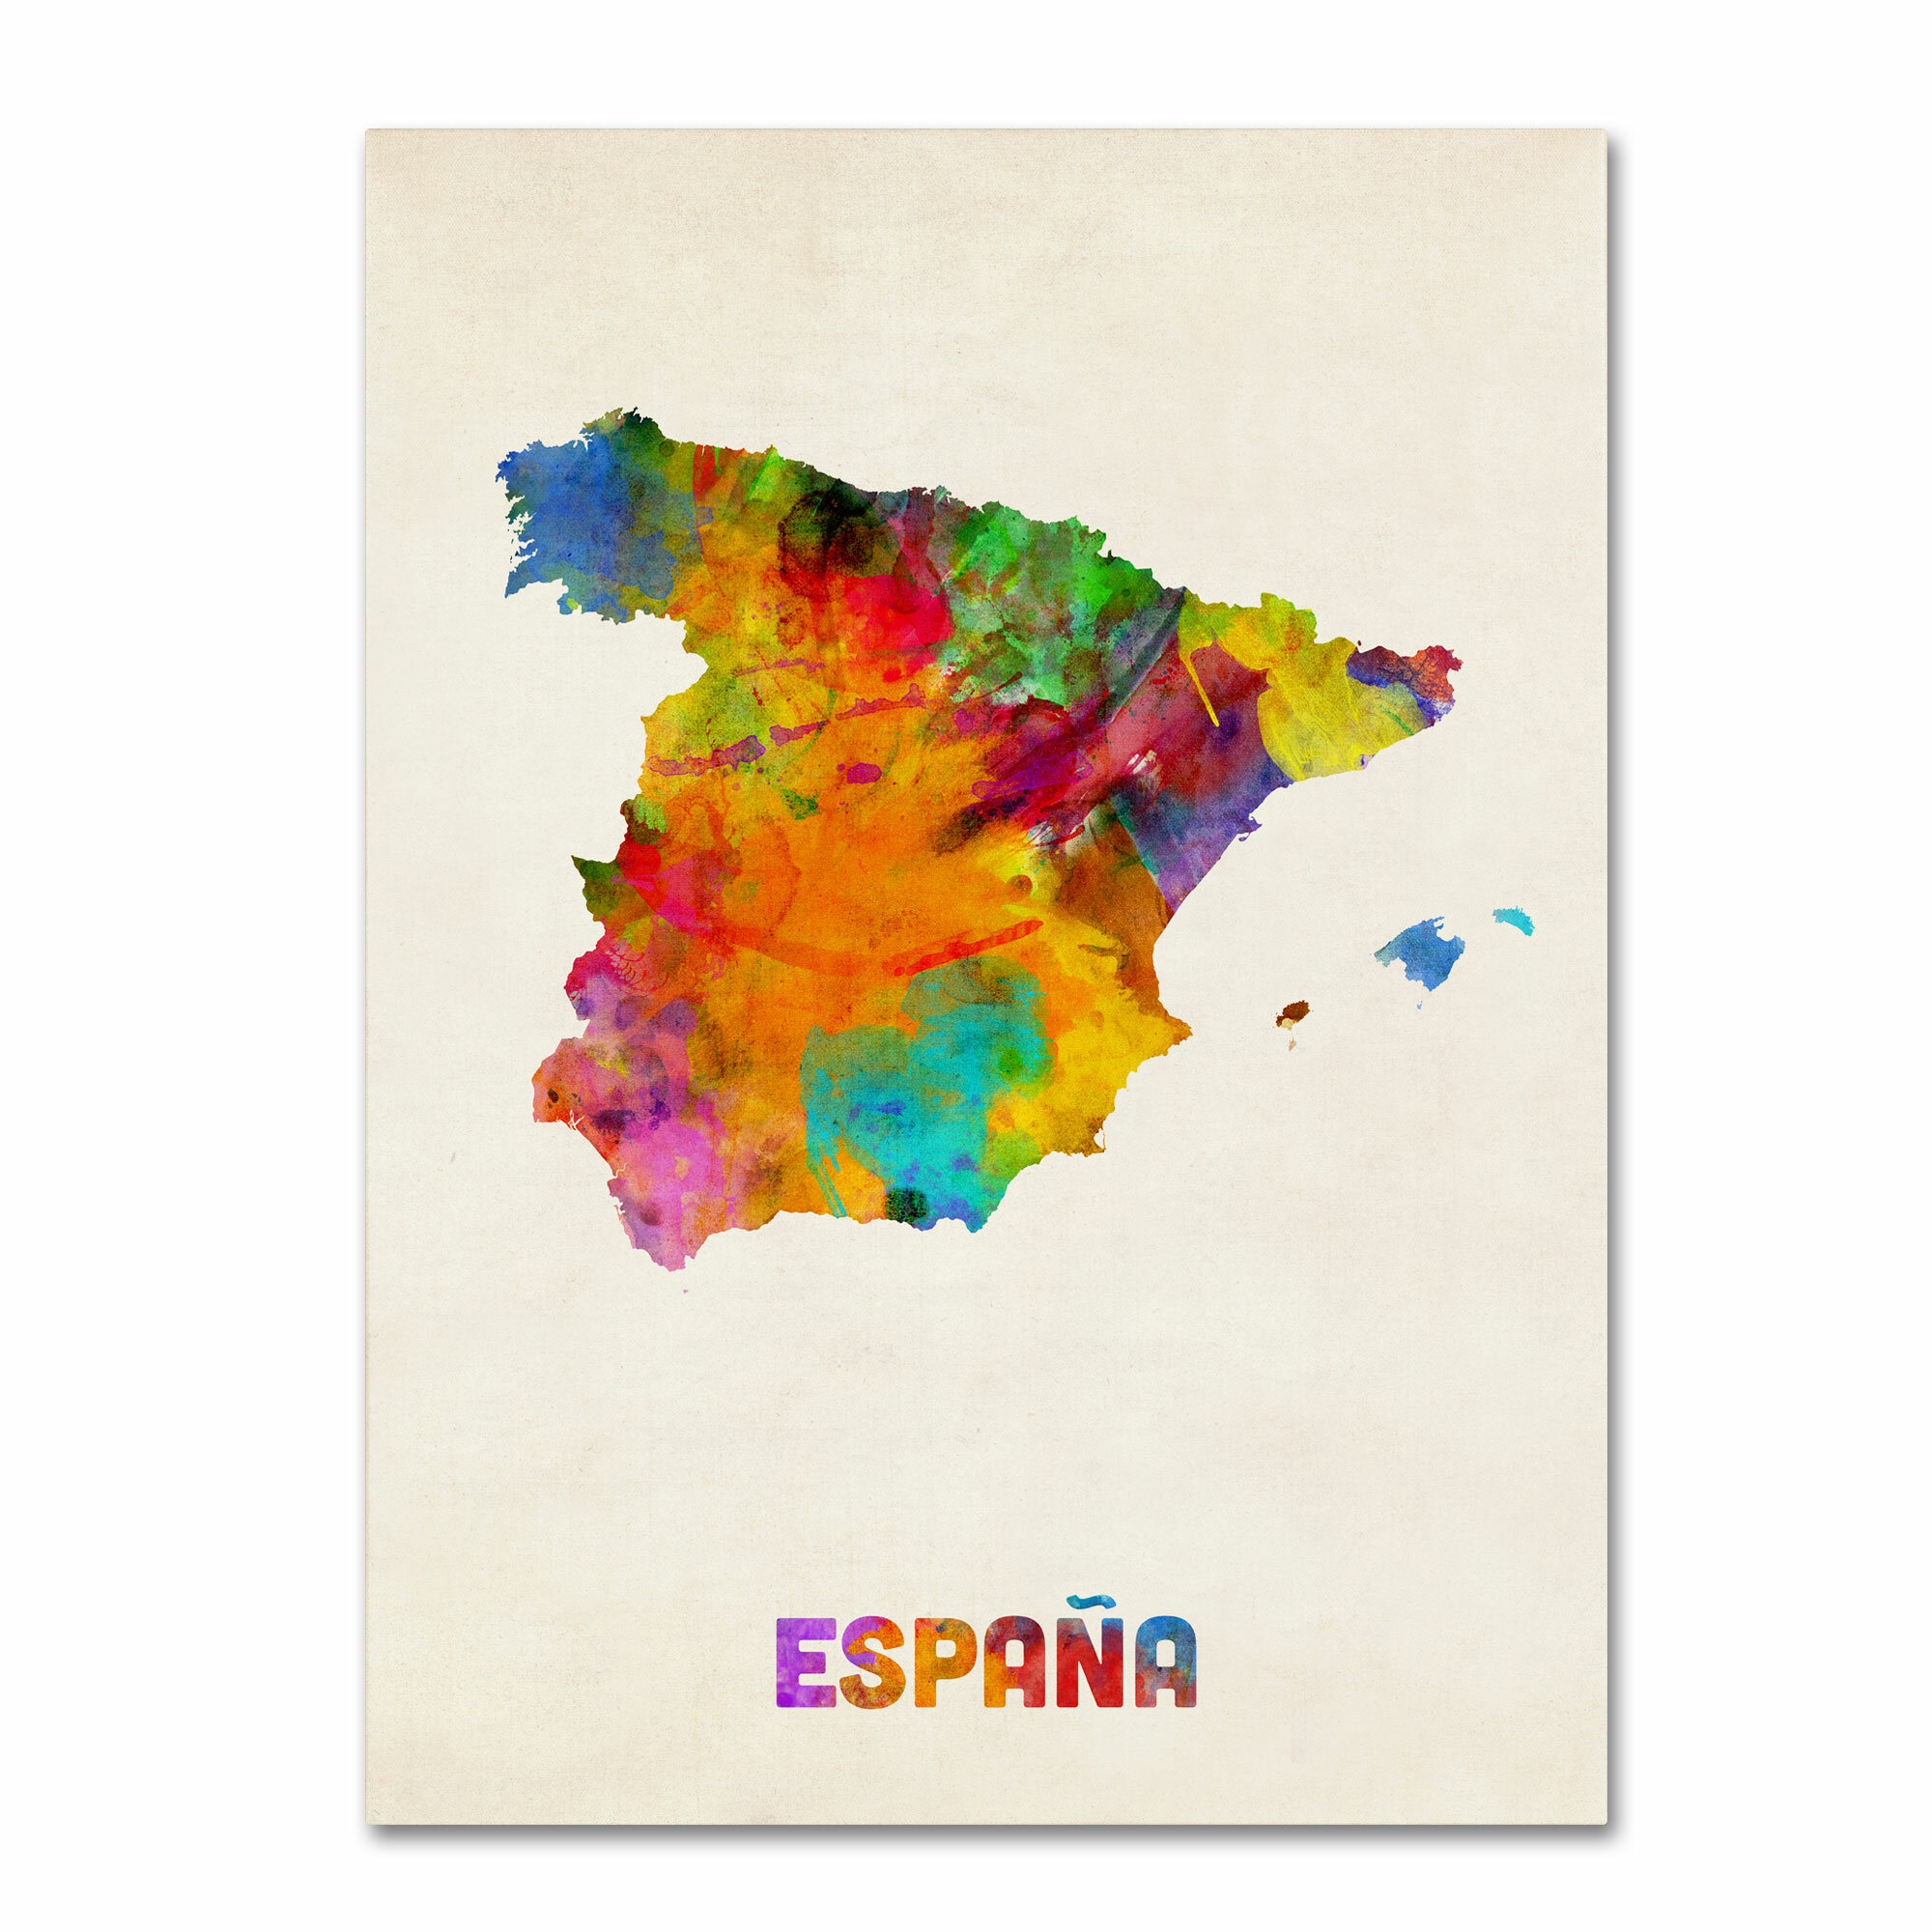 Map Of Spain For Printing.Spain Watercolor Map By Michael Tompsett Painting Print On Wrapped Canvas